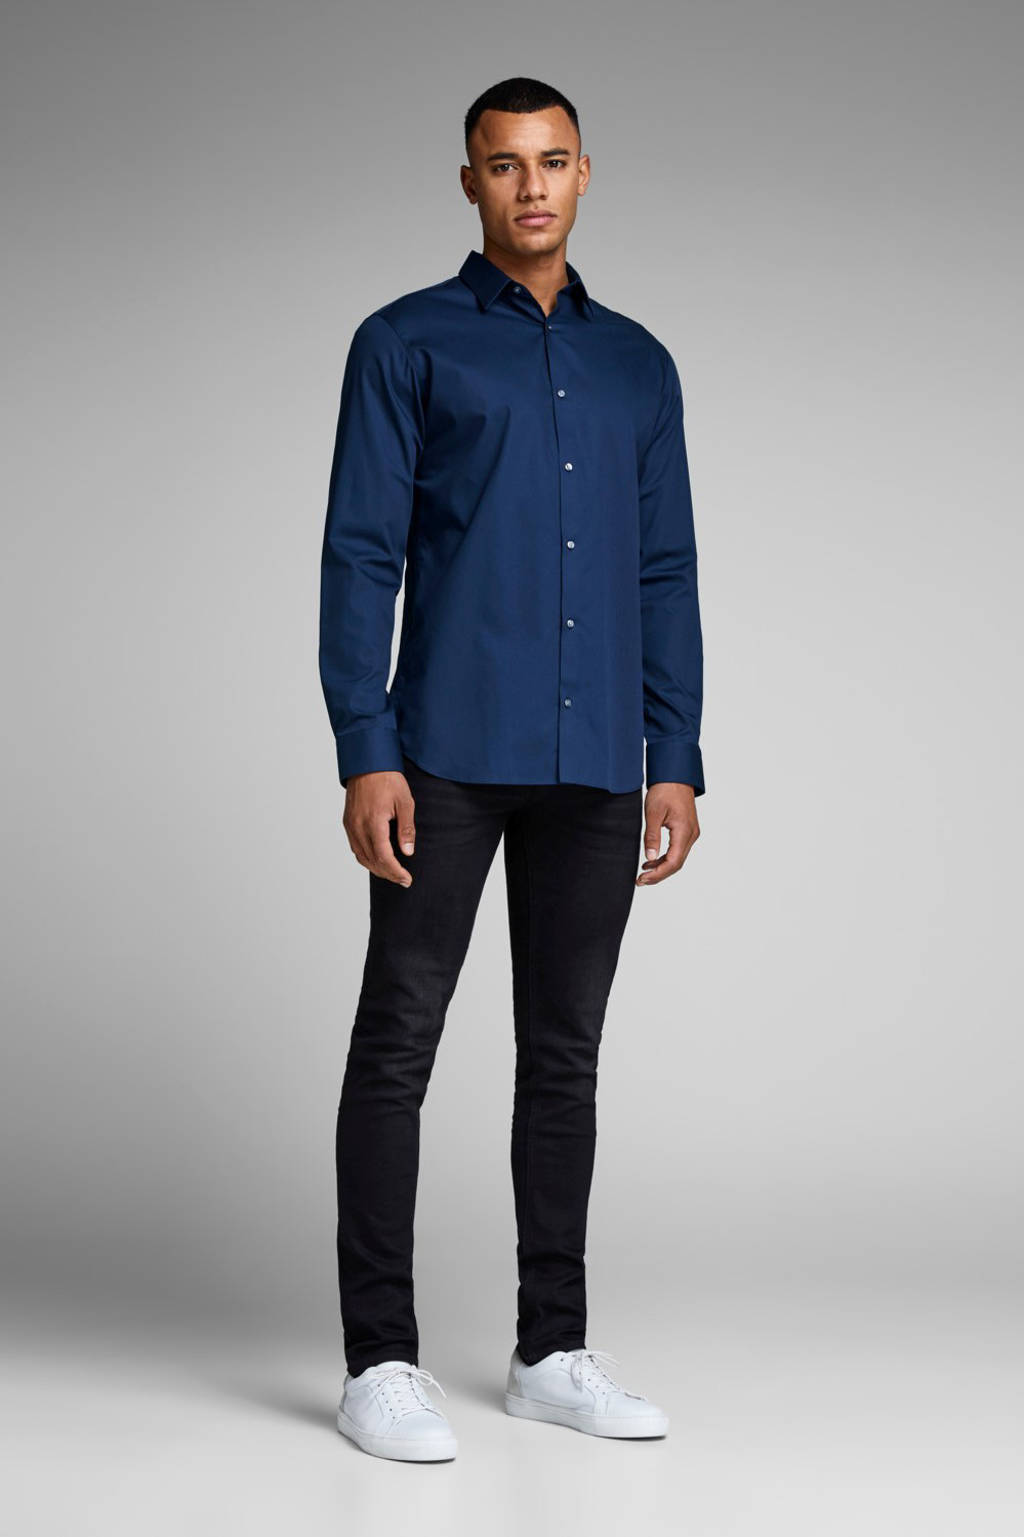 JACK & JONES PREMIUM slim fit overhemd, Donkerblauw